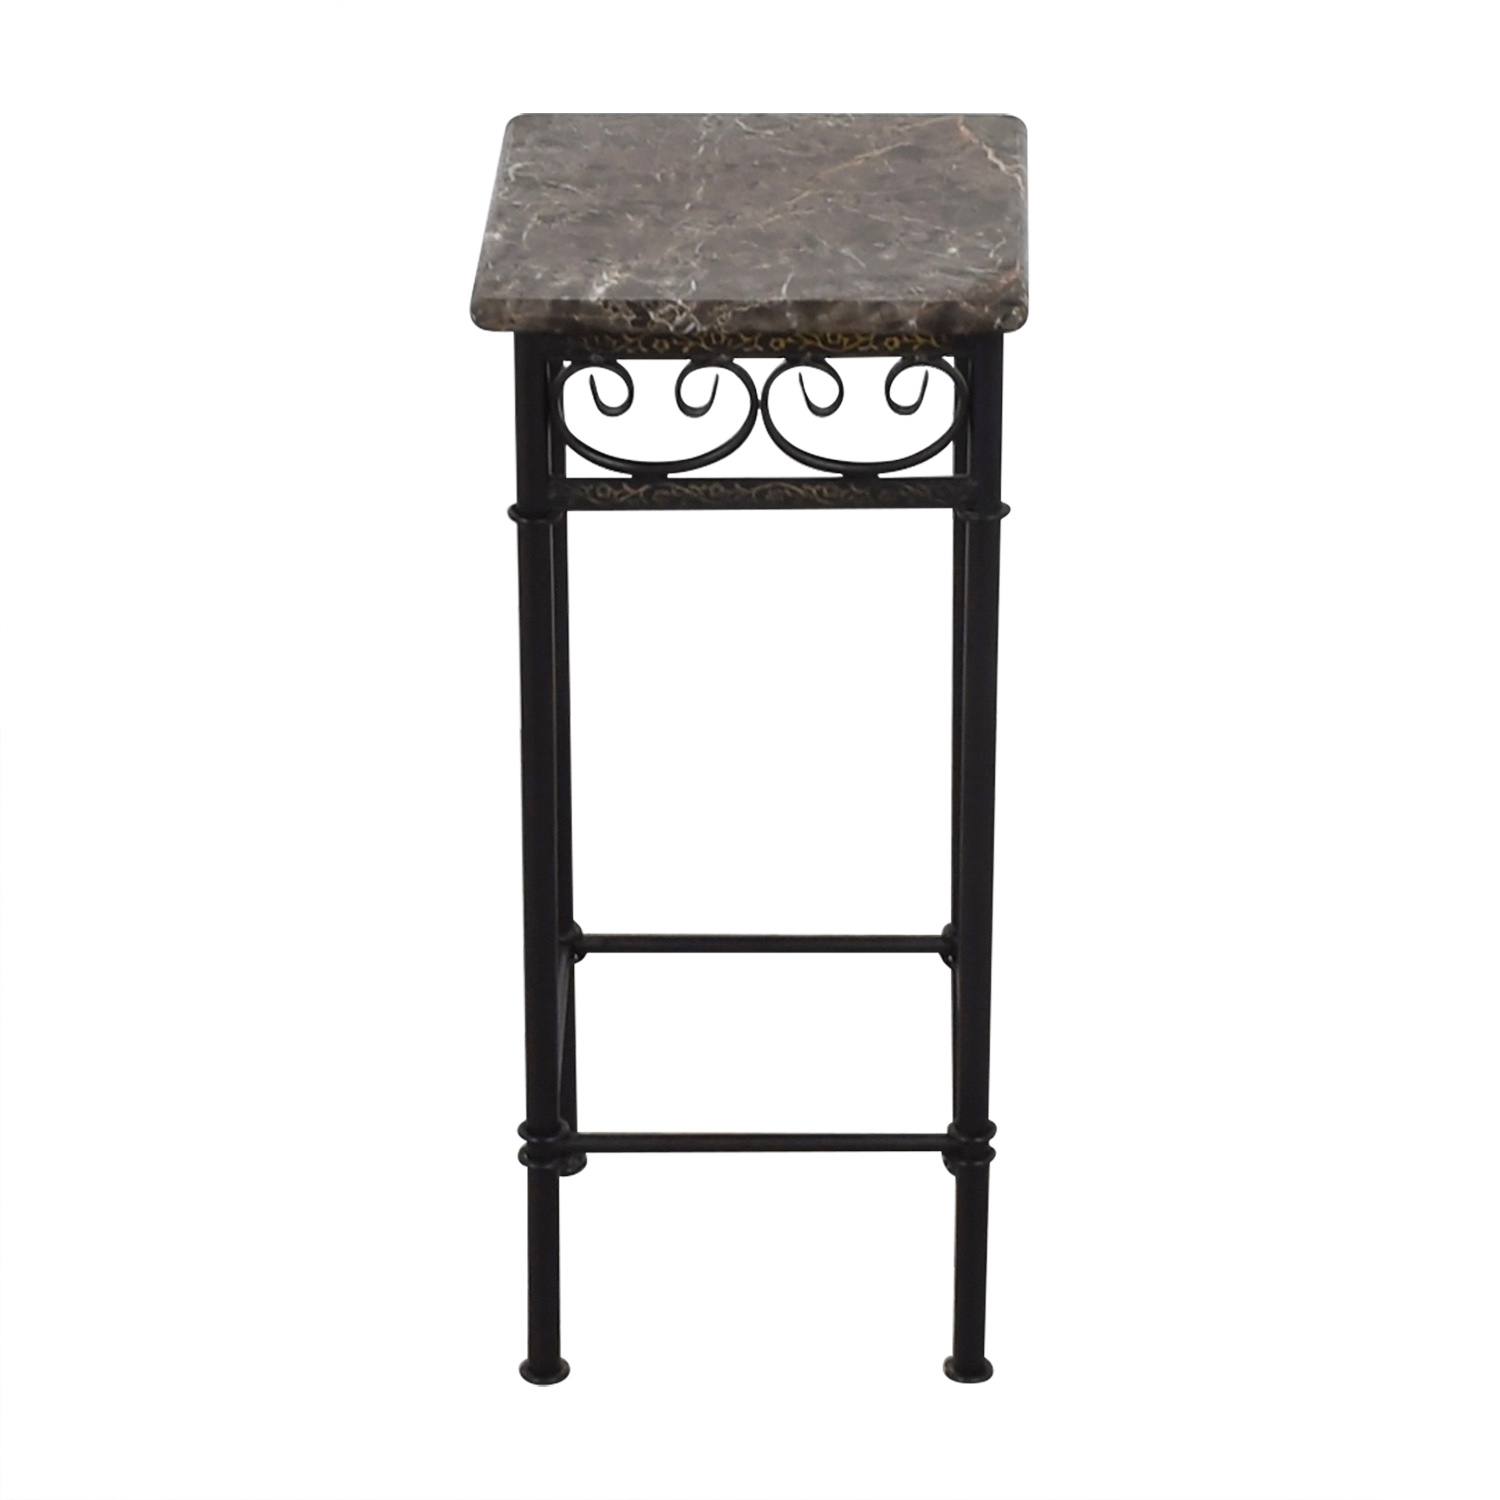 Faux Marble with Black Metal Base Accent Table nj